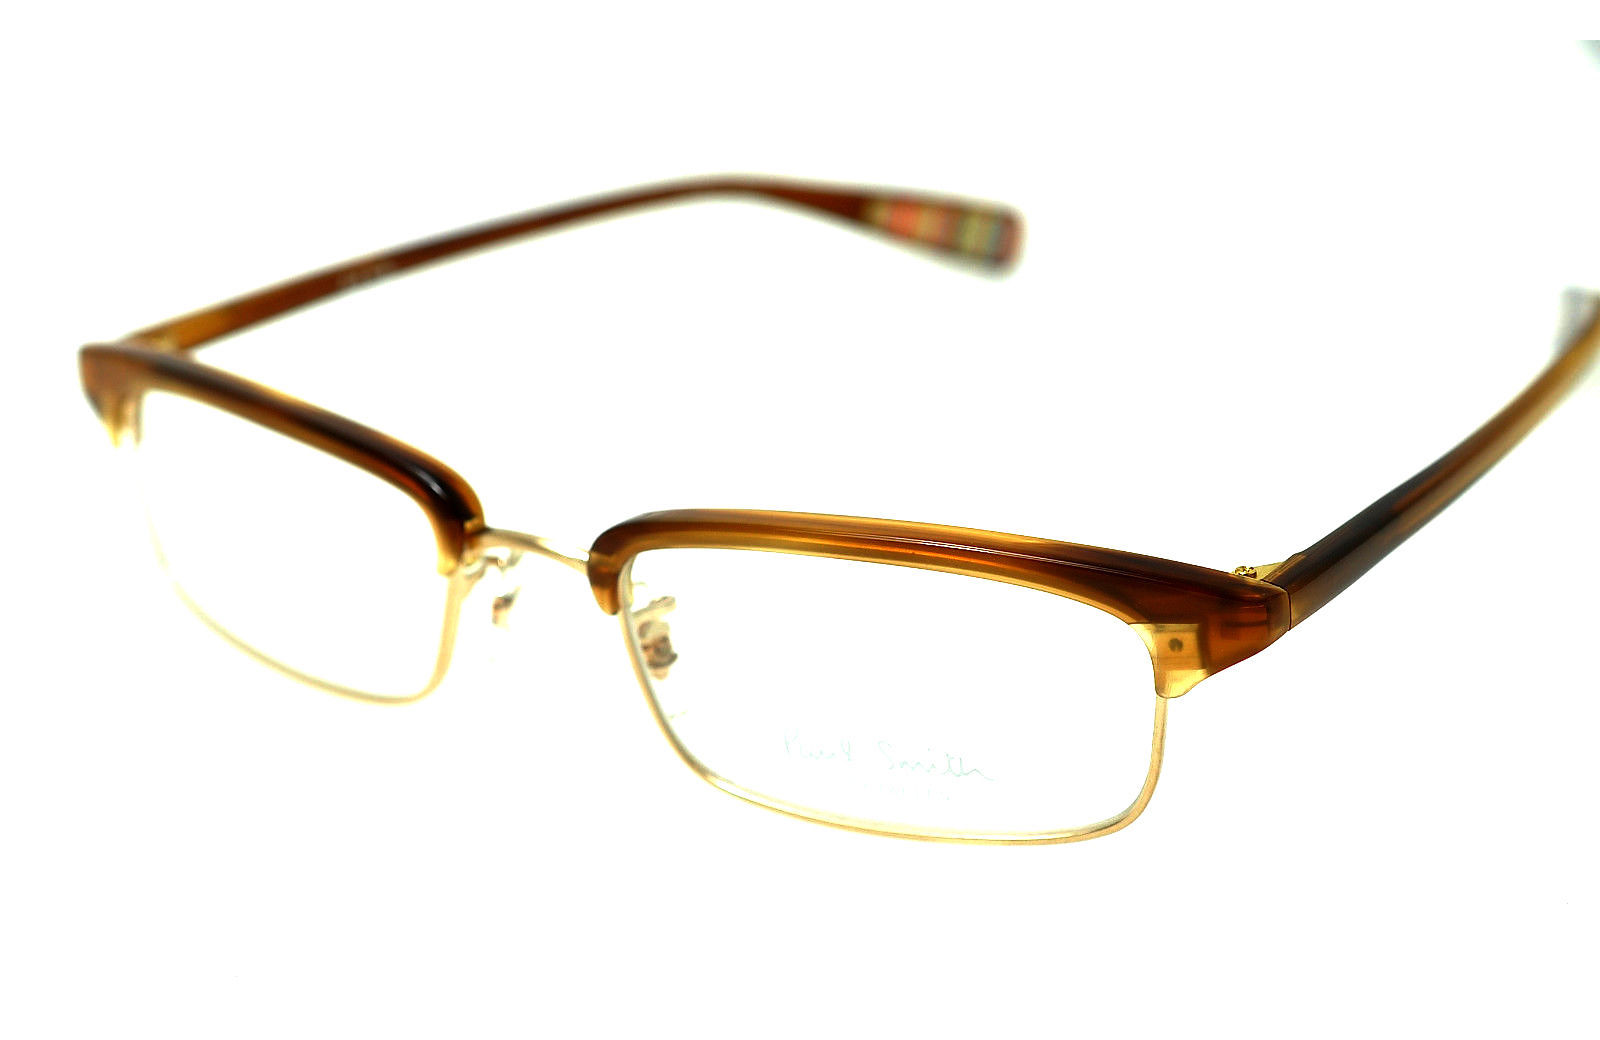 Paul Smith Eyeglasses: 8 listings